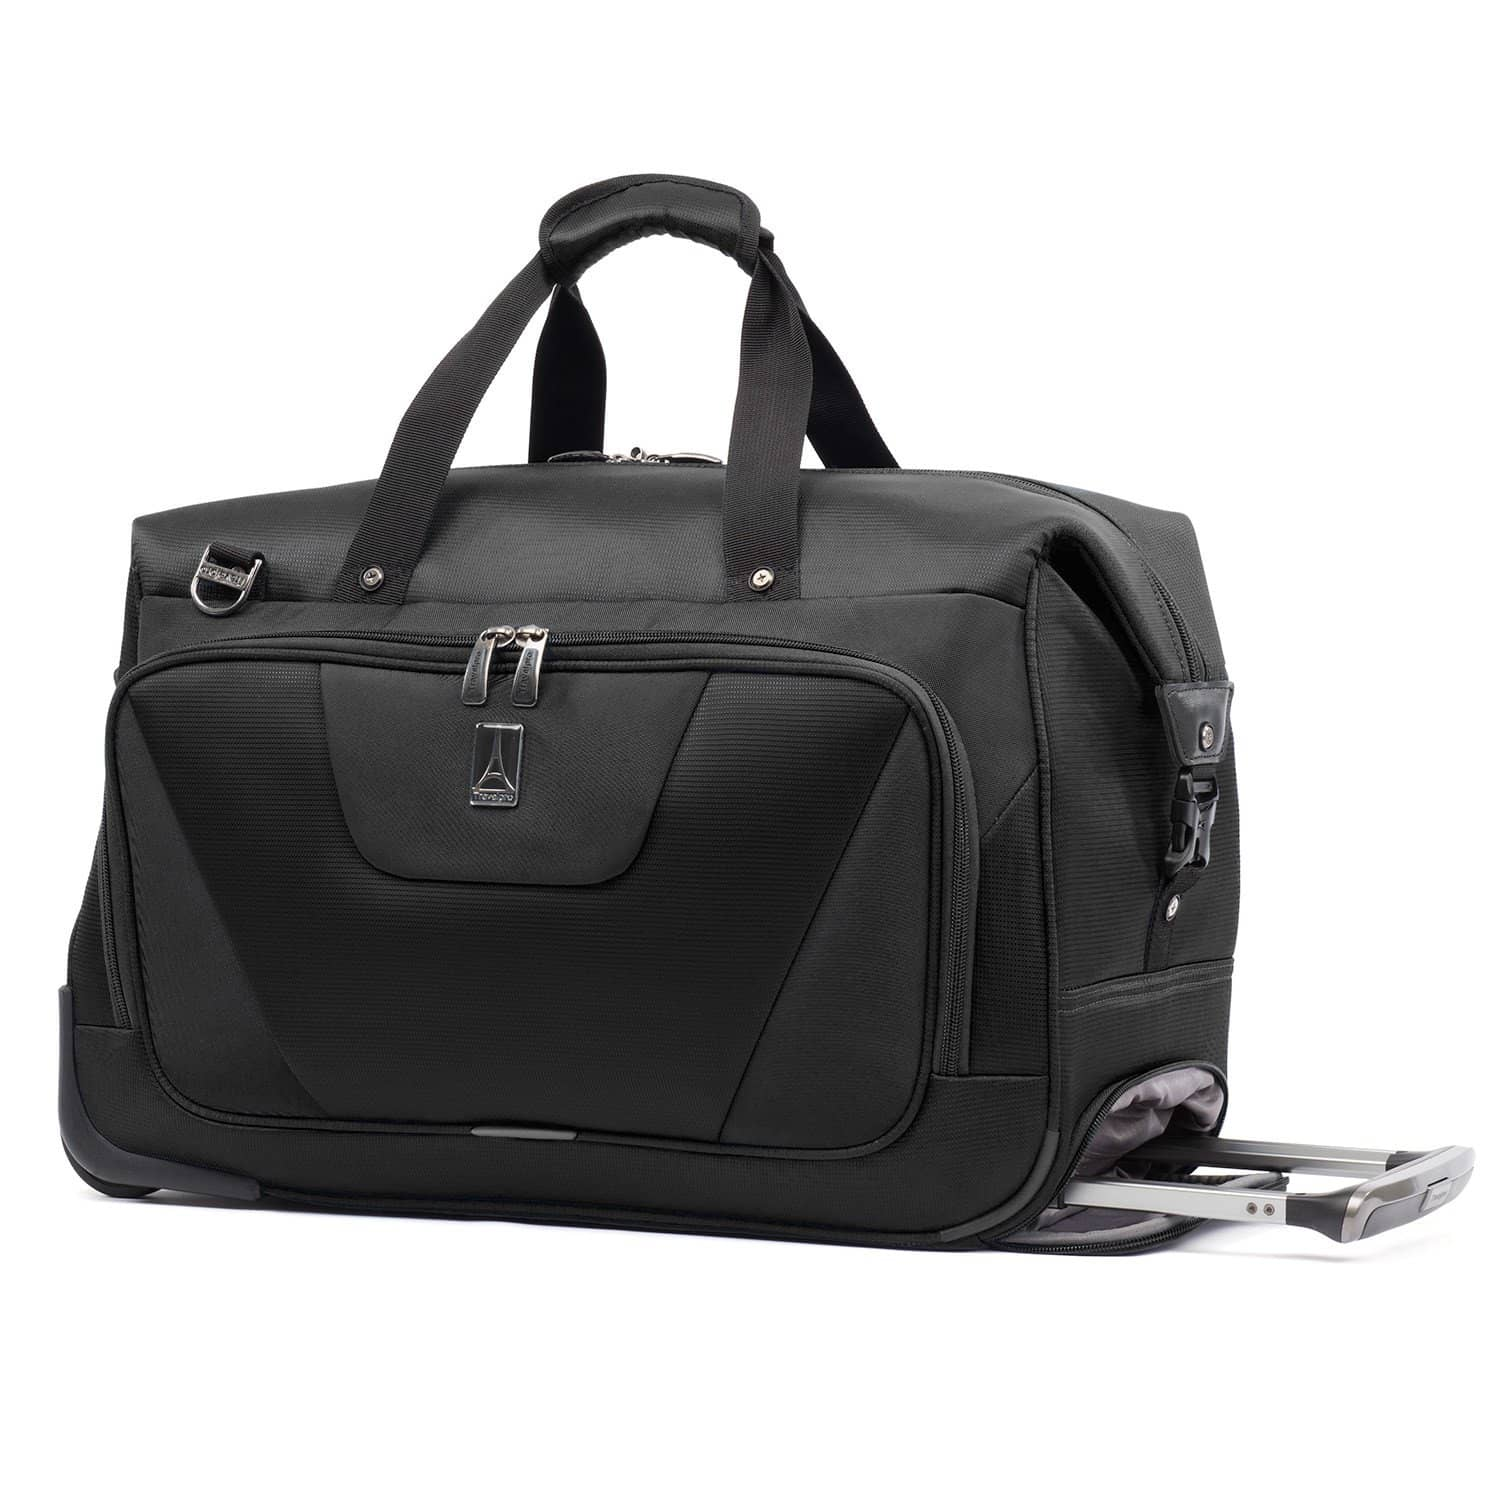 Travelpro Maxlite®4 Carry-on Rolling Duffle BLACK